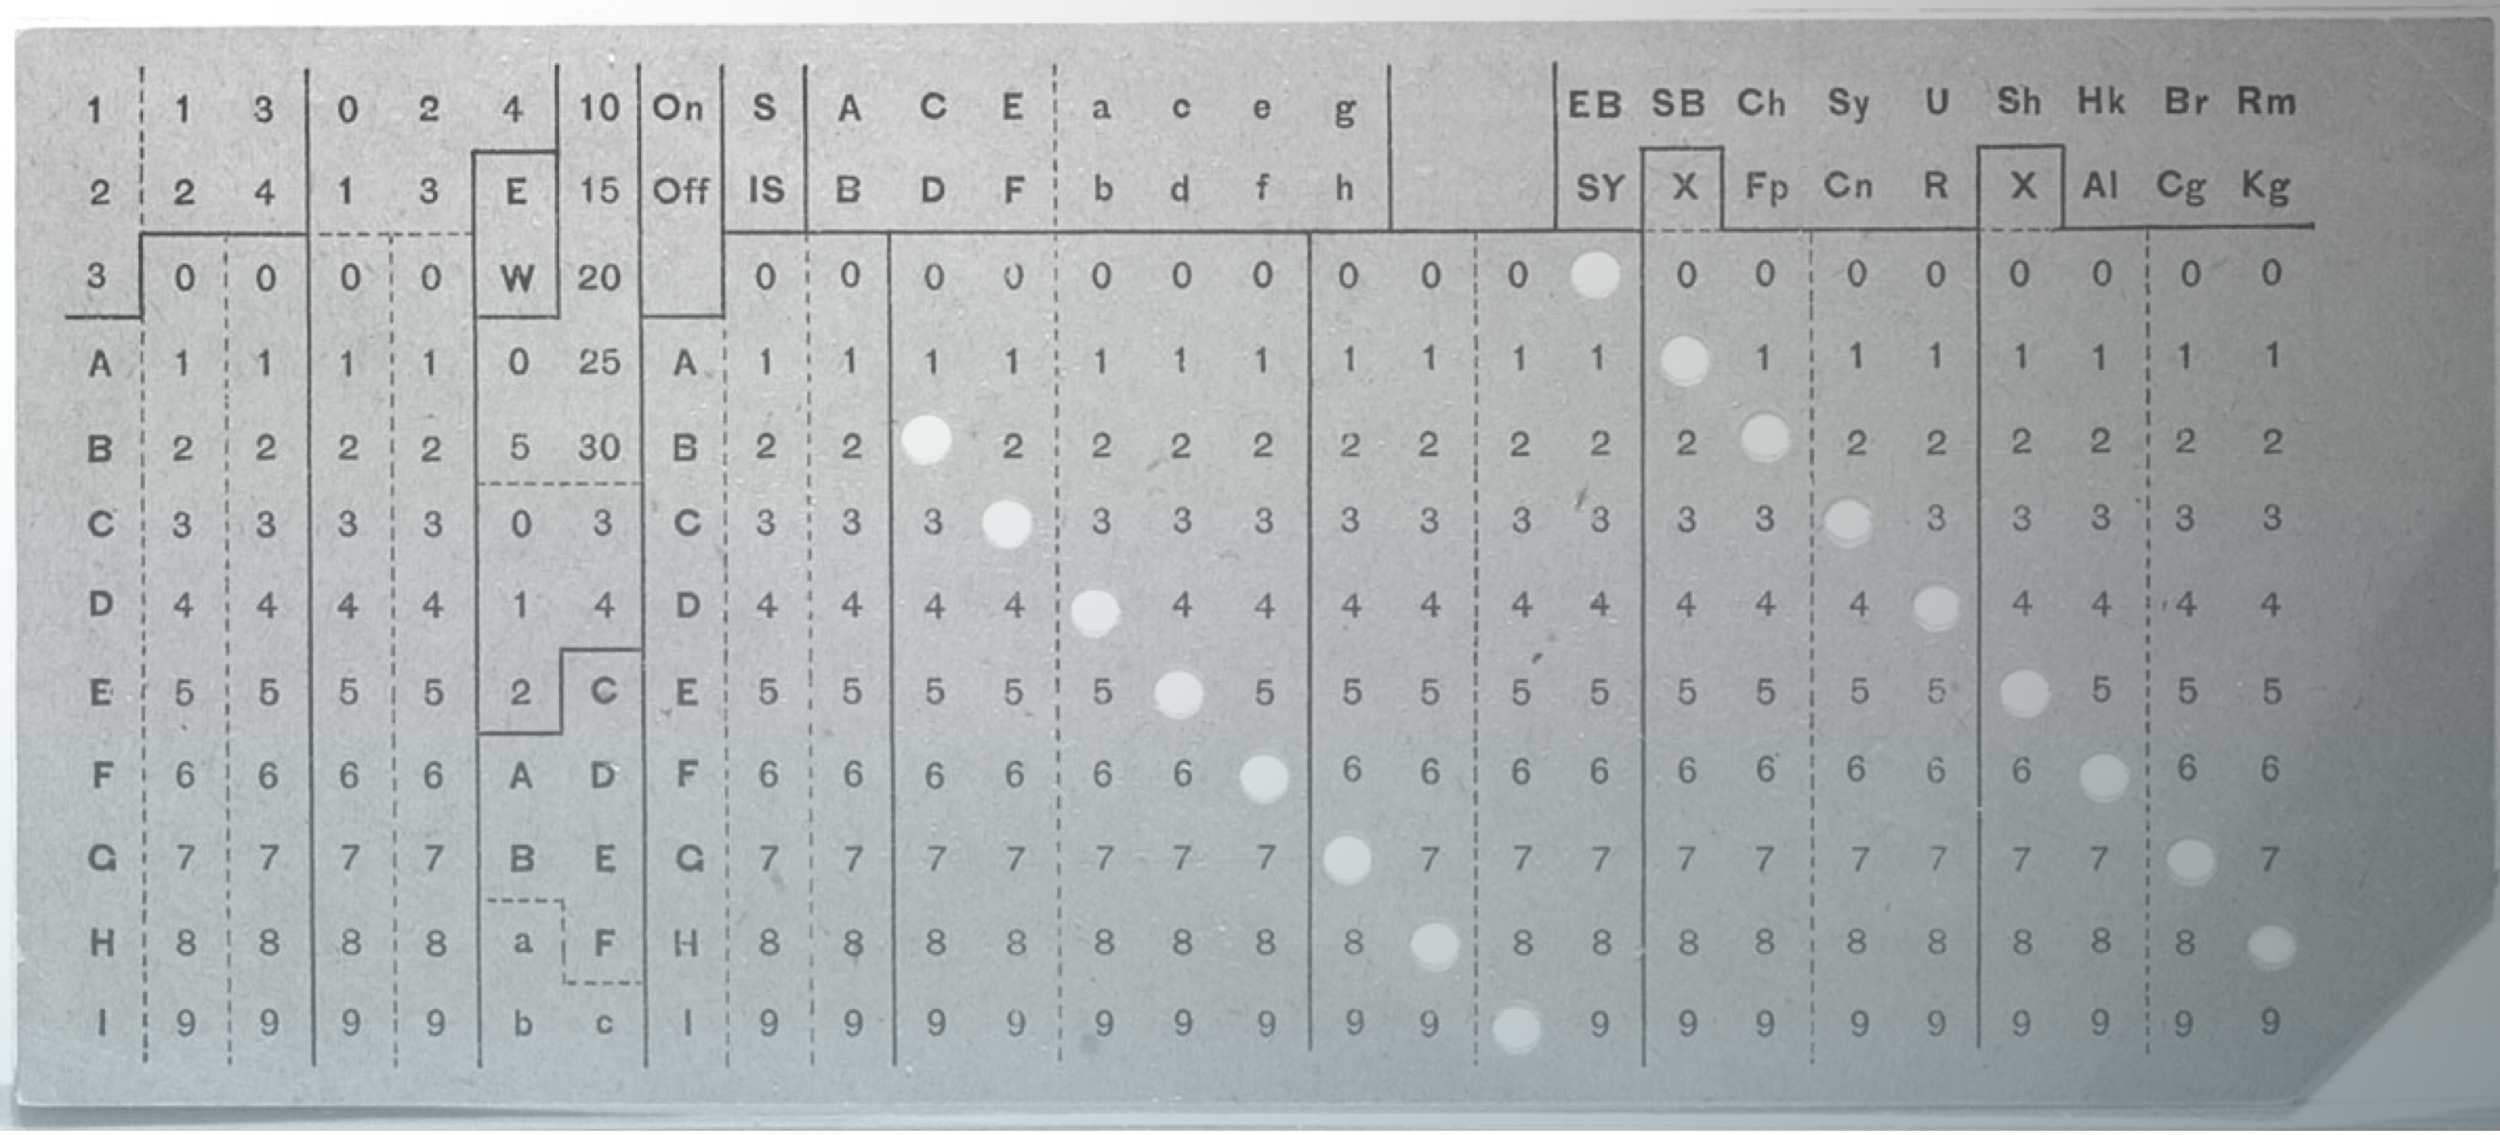 Image:  A sample of a punch card and our inspiration for the project.